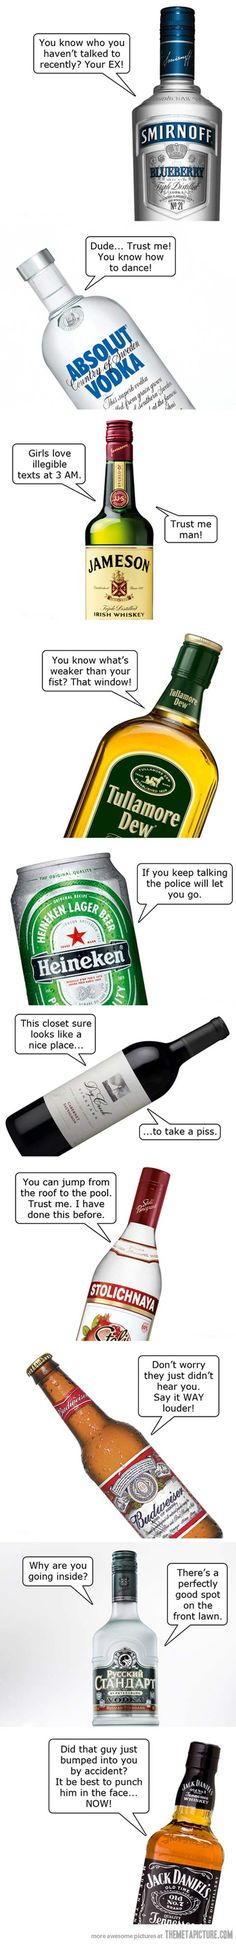 If alcohol could talk...lol